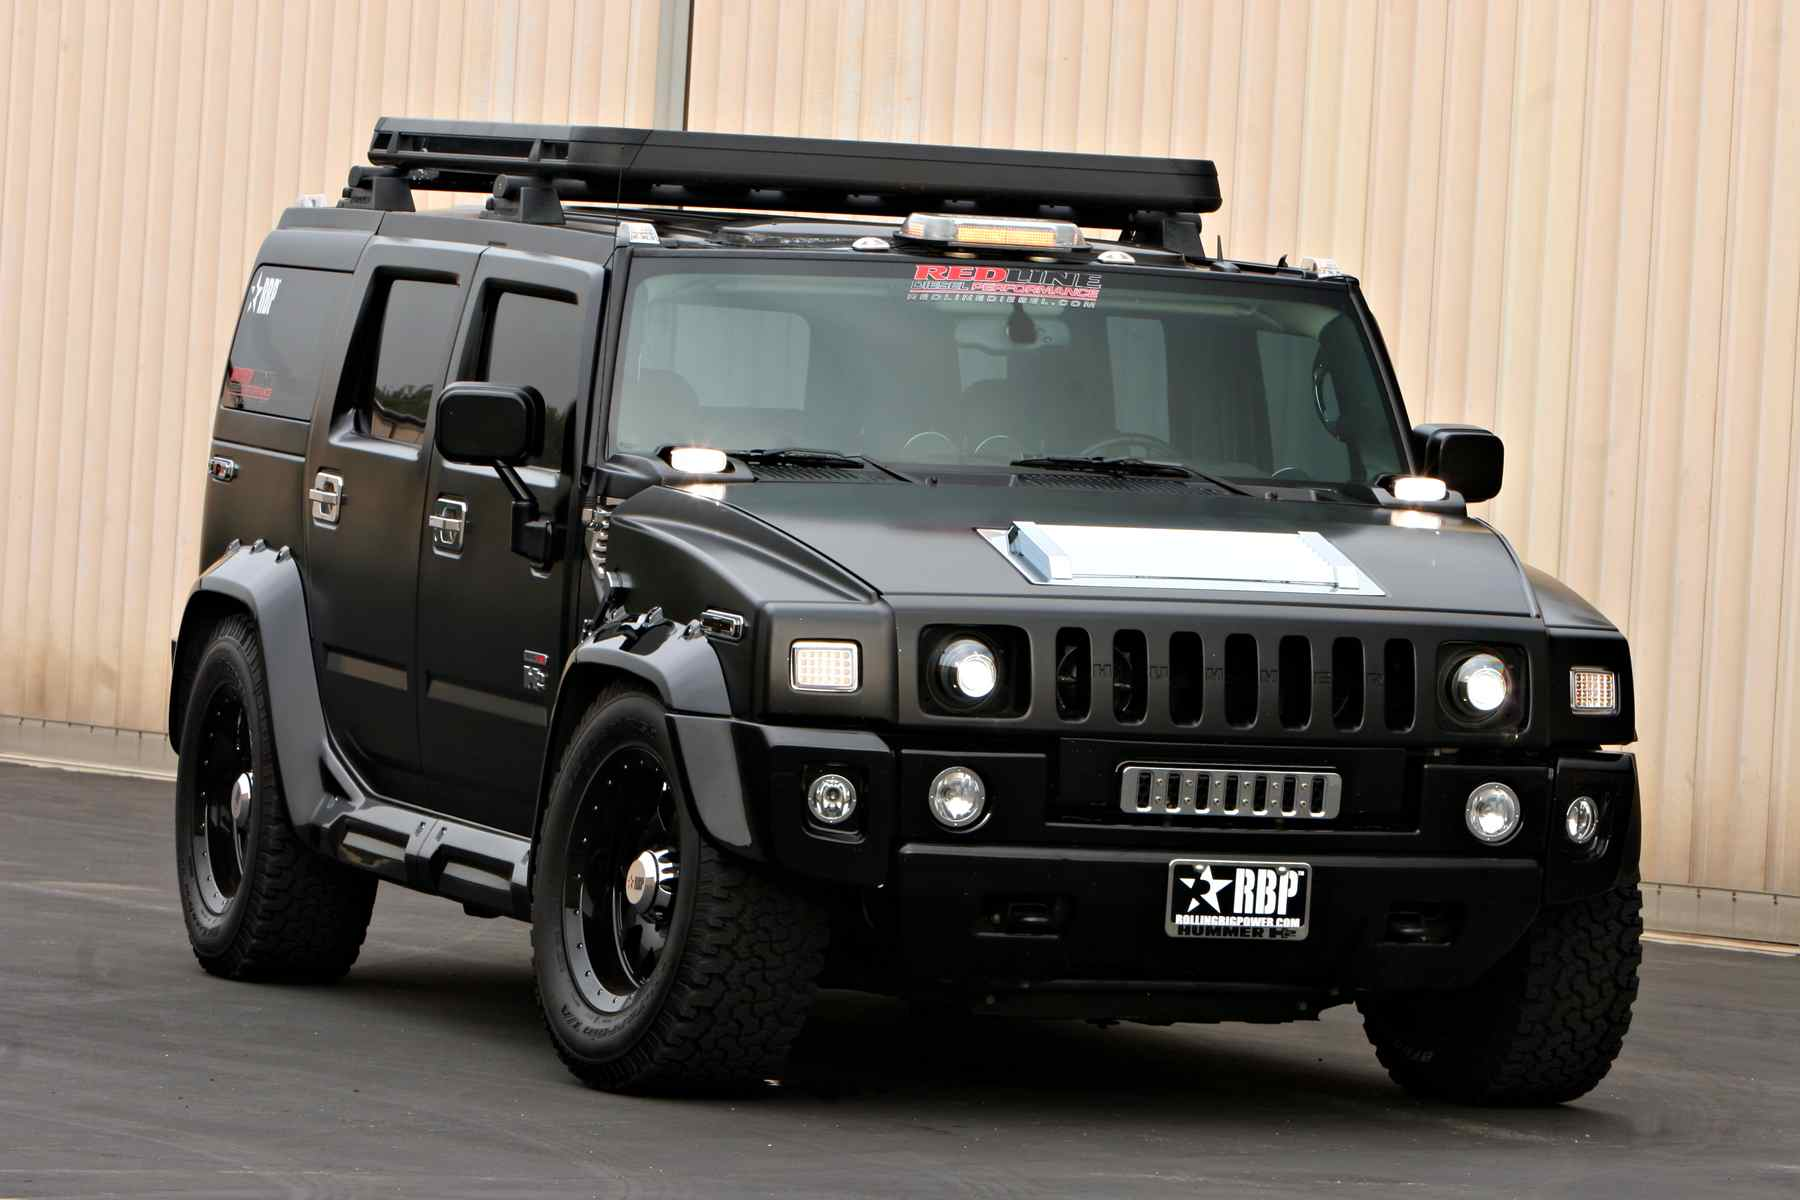 2005 Hummer H2 suv 1 8 mile Drag Racing timeslip 0 60 DragTimes